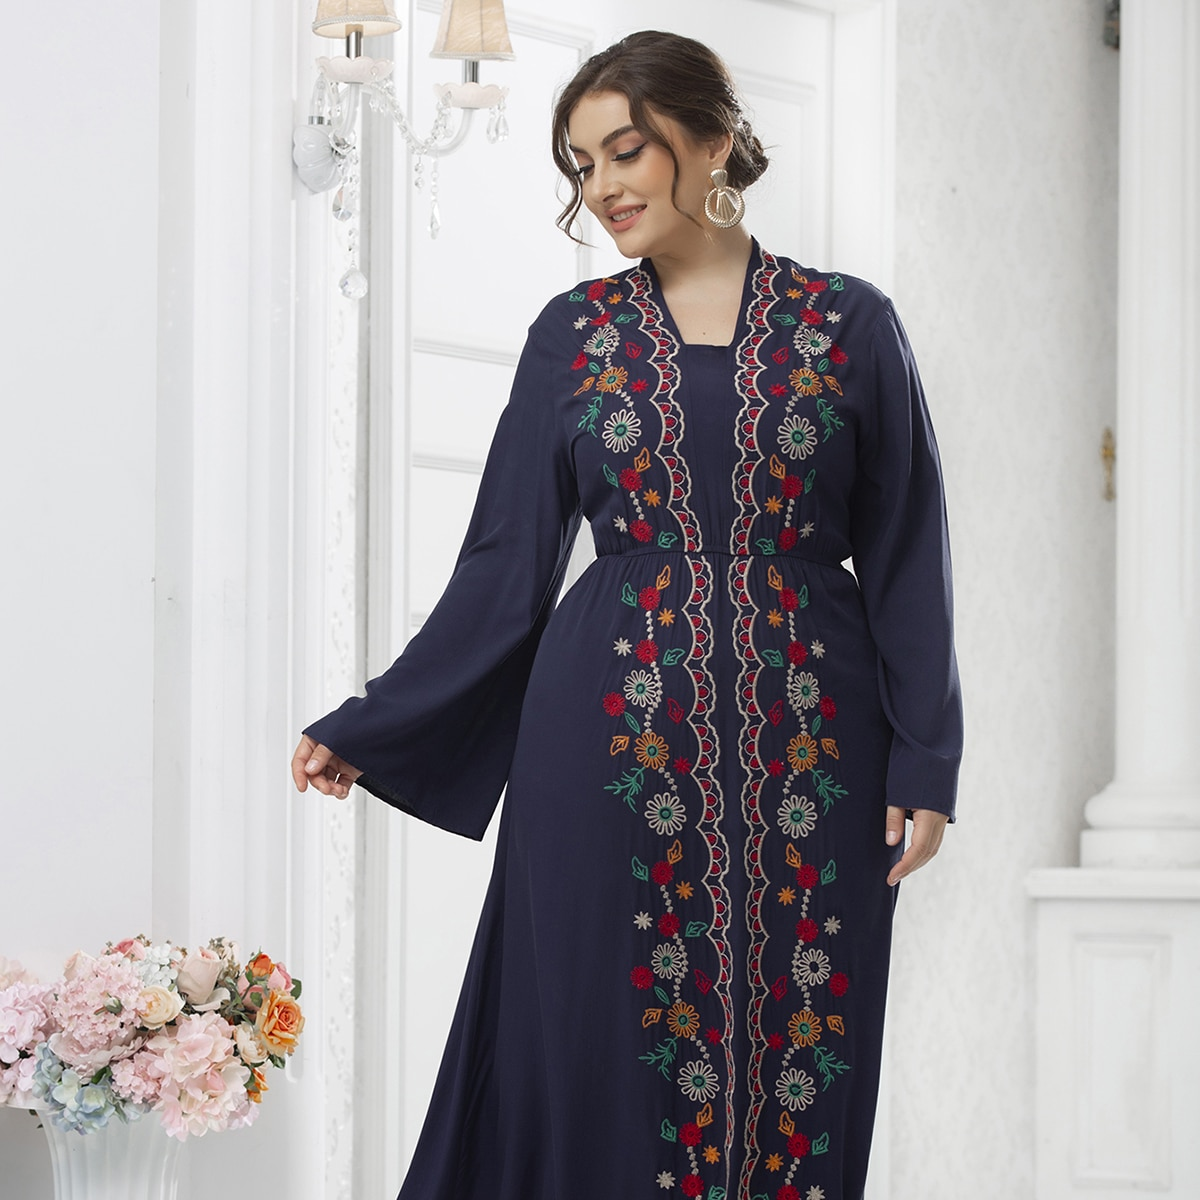 Plus Flower Embroidery Trumpet Sleeve Dress, SHEIN  - buy with discount